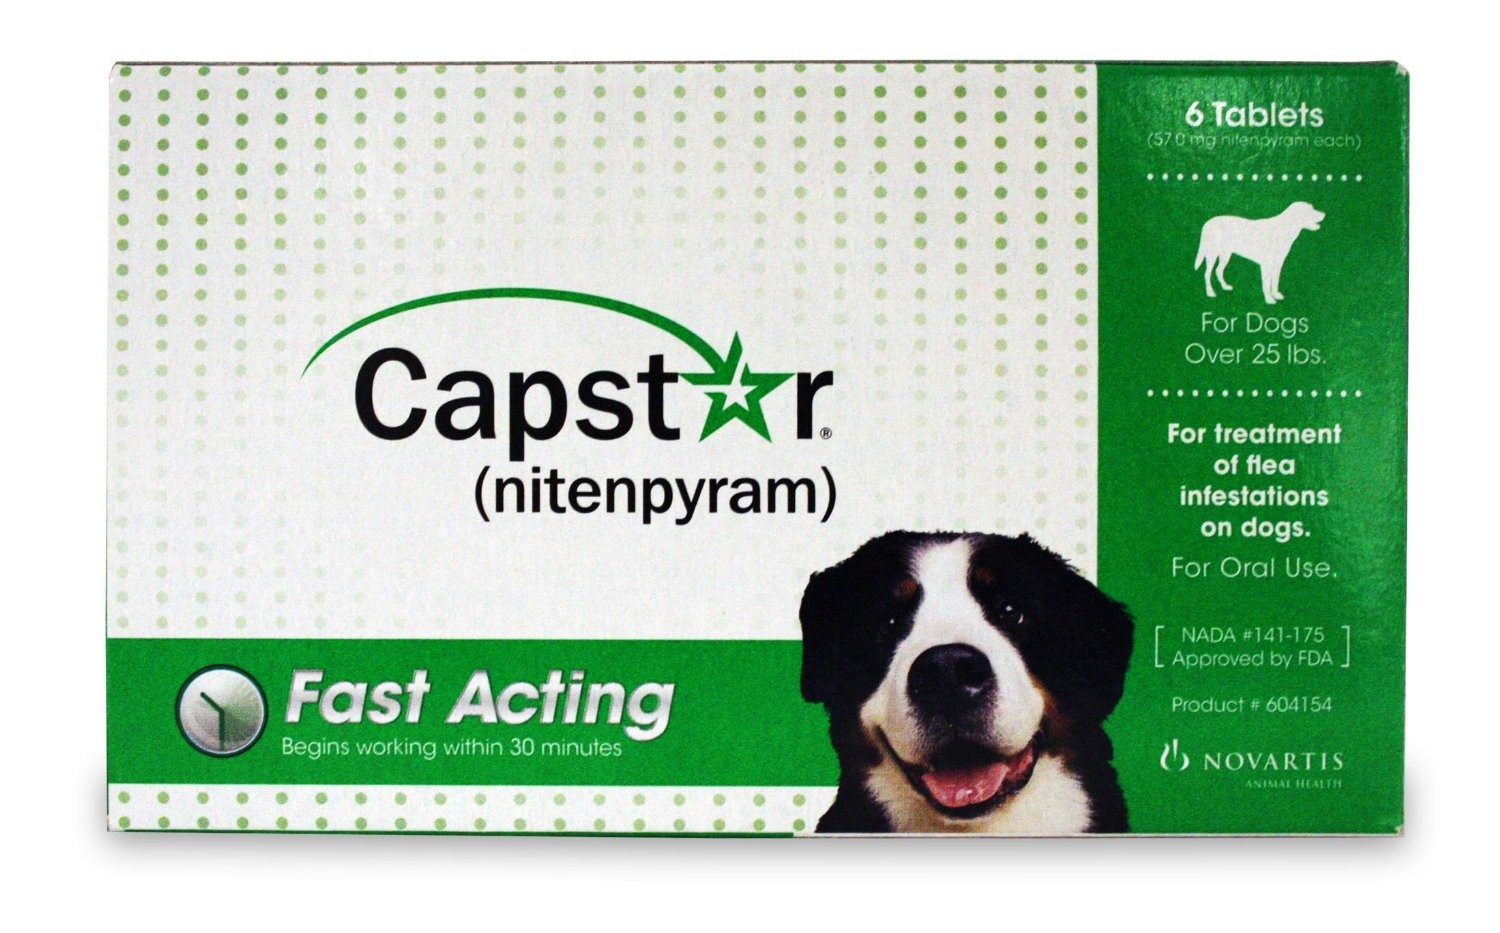 Capstar for Dogs over 25 lbs